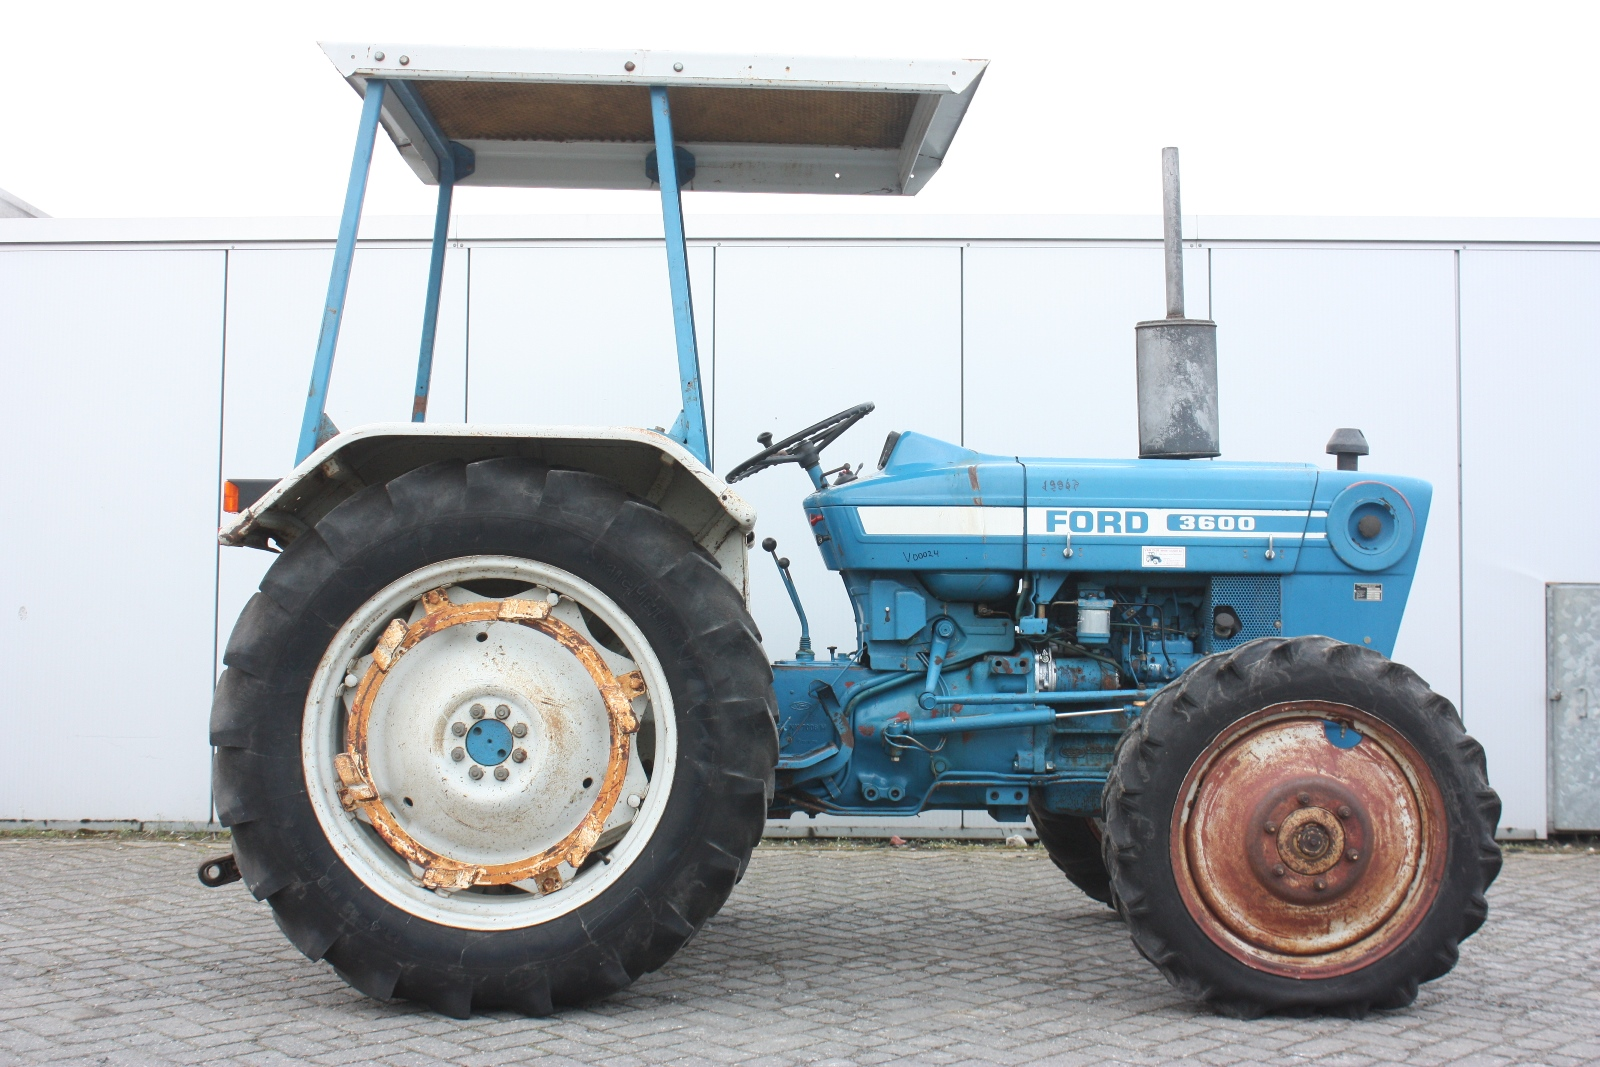 Ford 3600 Tractor : Ford wd agricultural tractor van dijk heavy